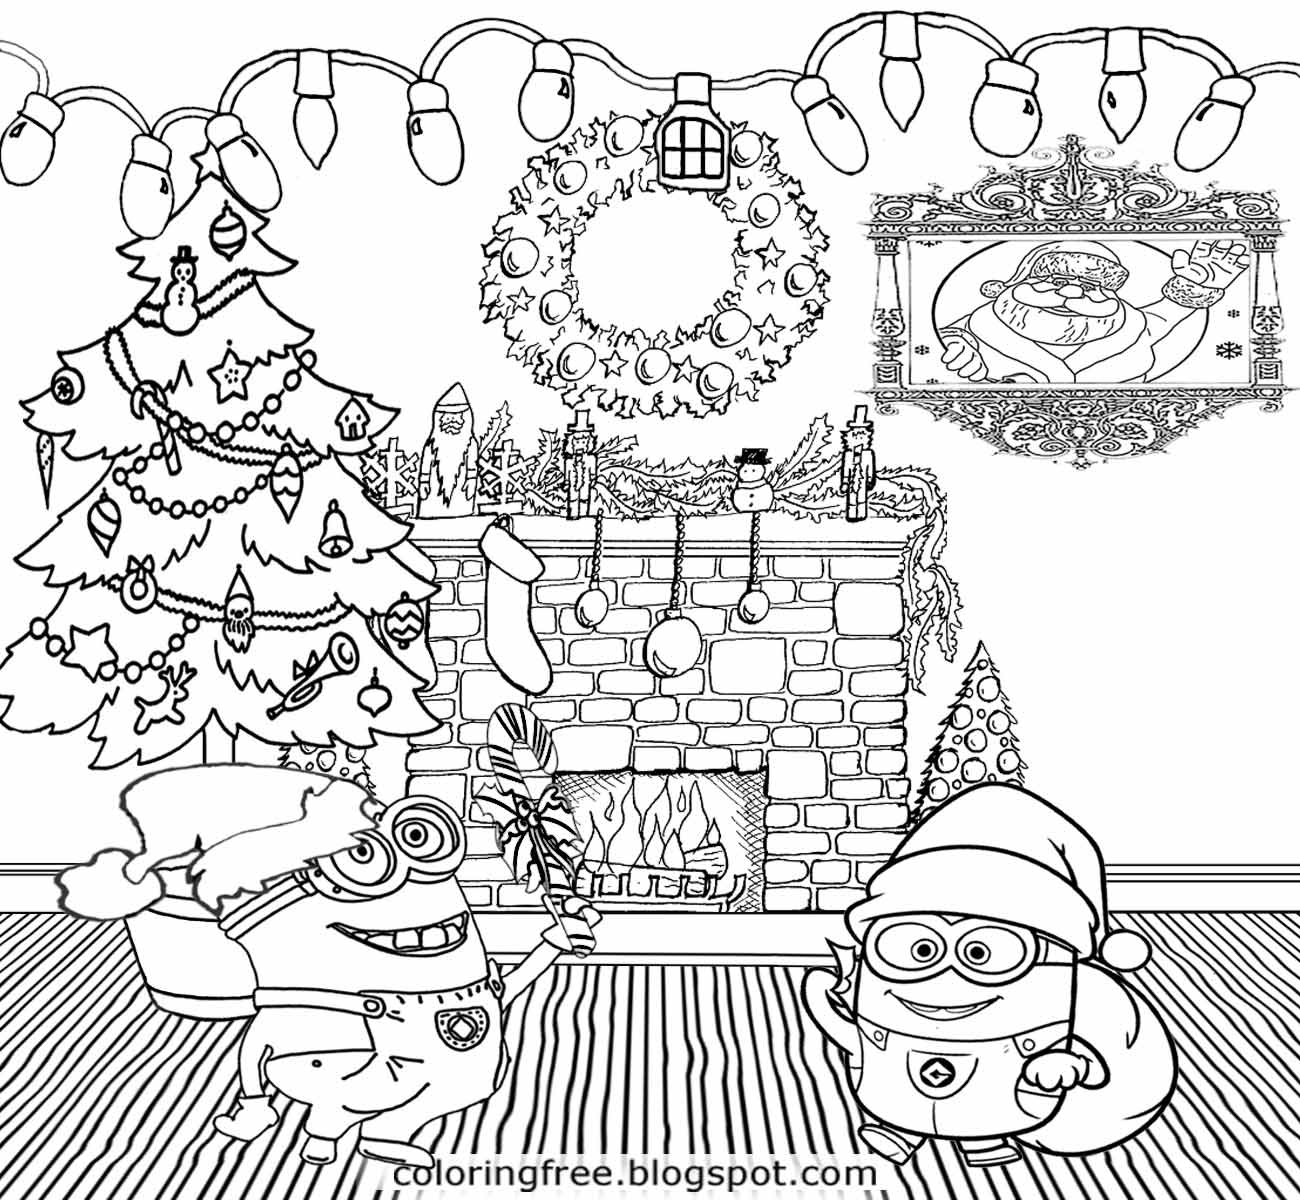 xmas tree party things to draw cool merry christmas minions coloring pages for teenagers to print